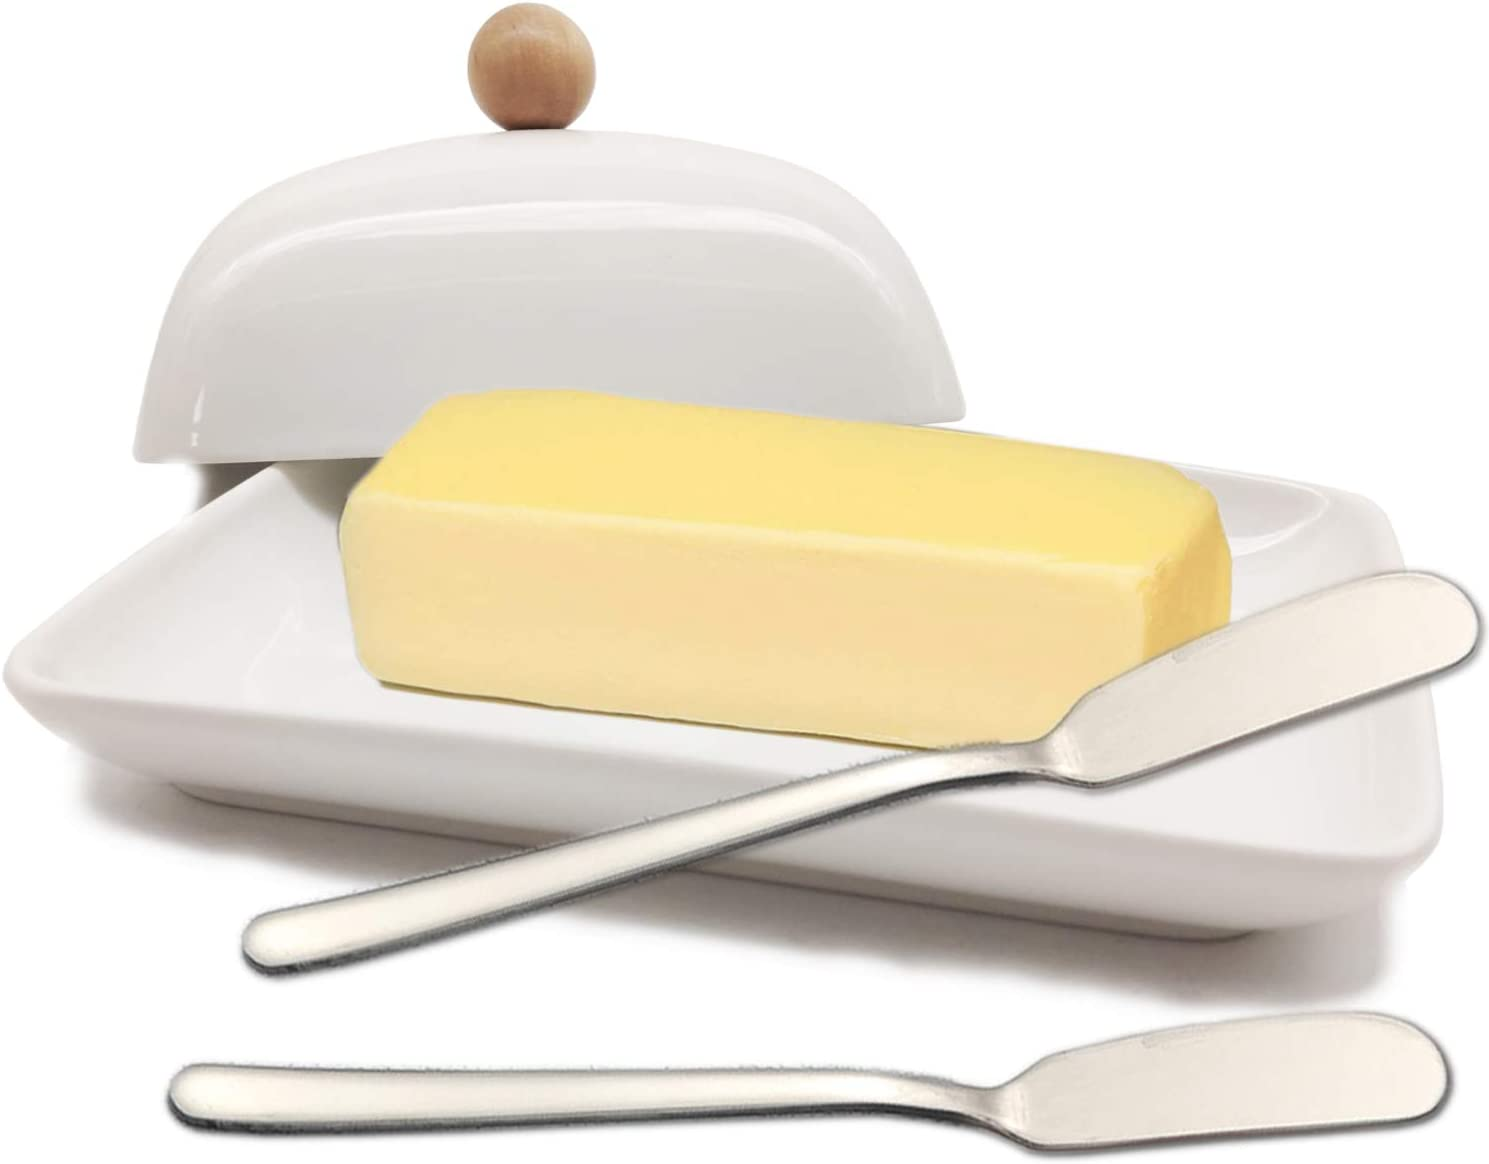 Butter Dish Set 3pcs Ceramic Butter Dish With 2 Stainless Steel Butter Knife Great For Store Butter On Dinning Table Kitchen Cooking White Butter Dishes